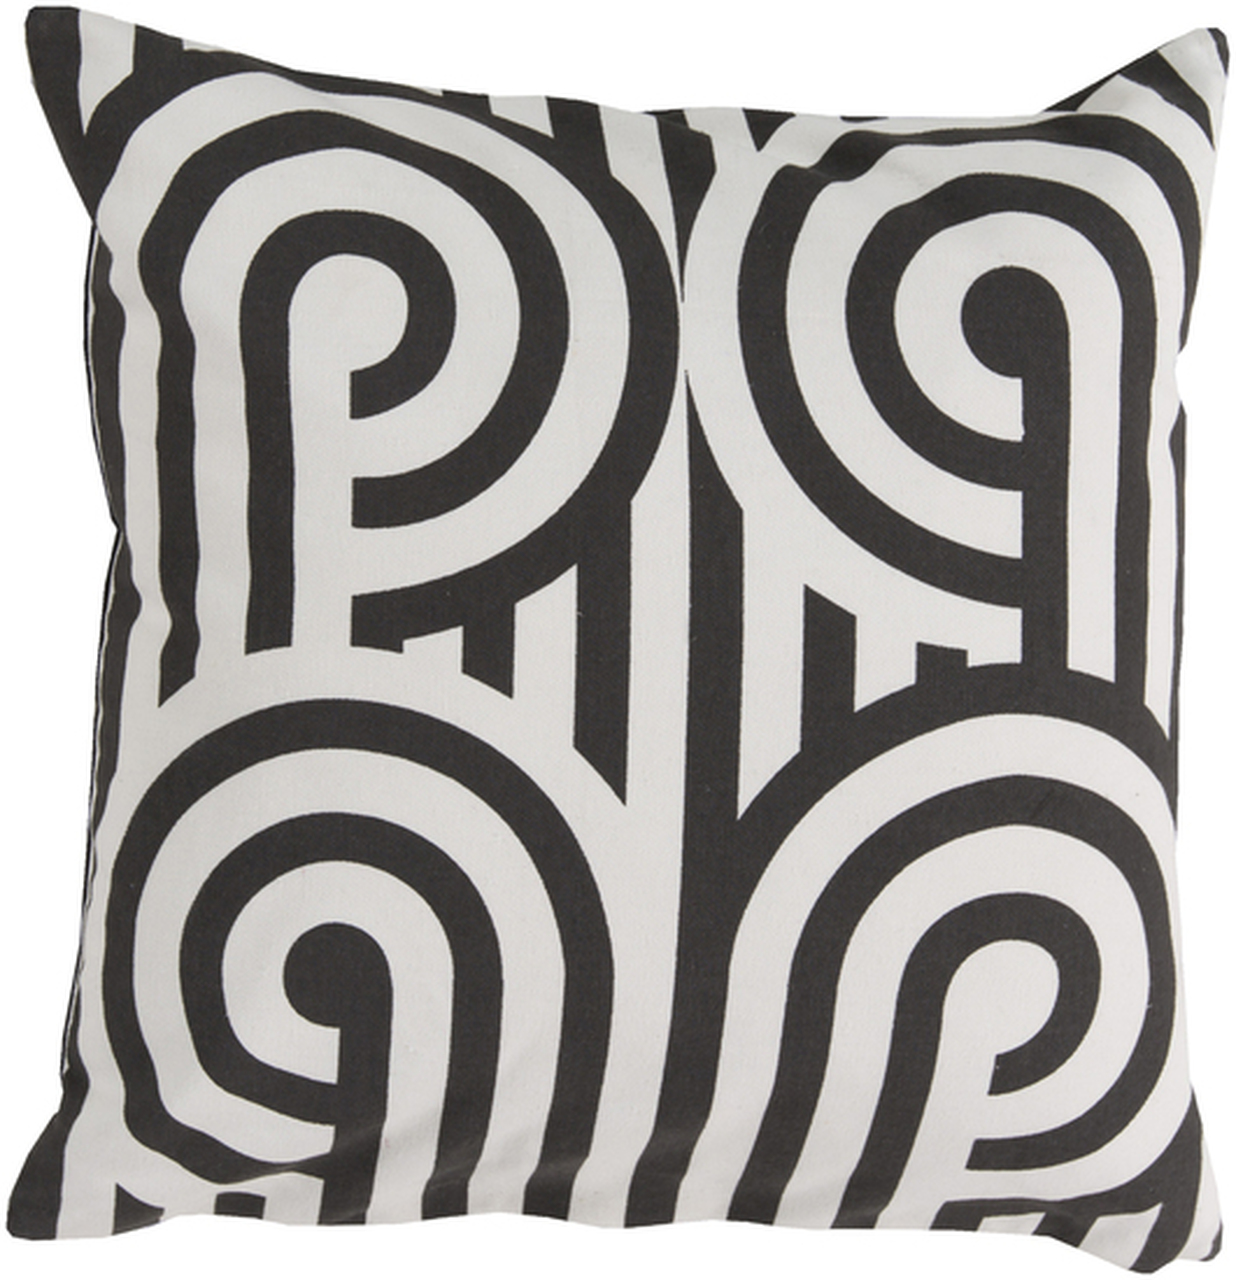 20 romano ionic coal black and white decorative square throw pillow poly filled